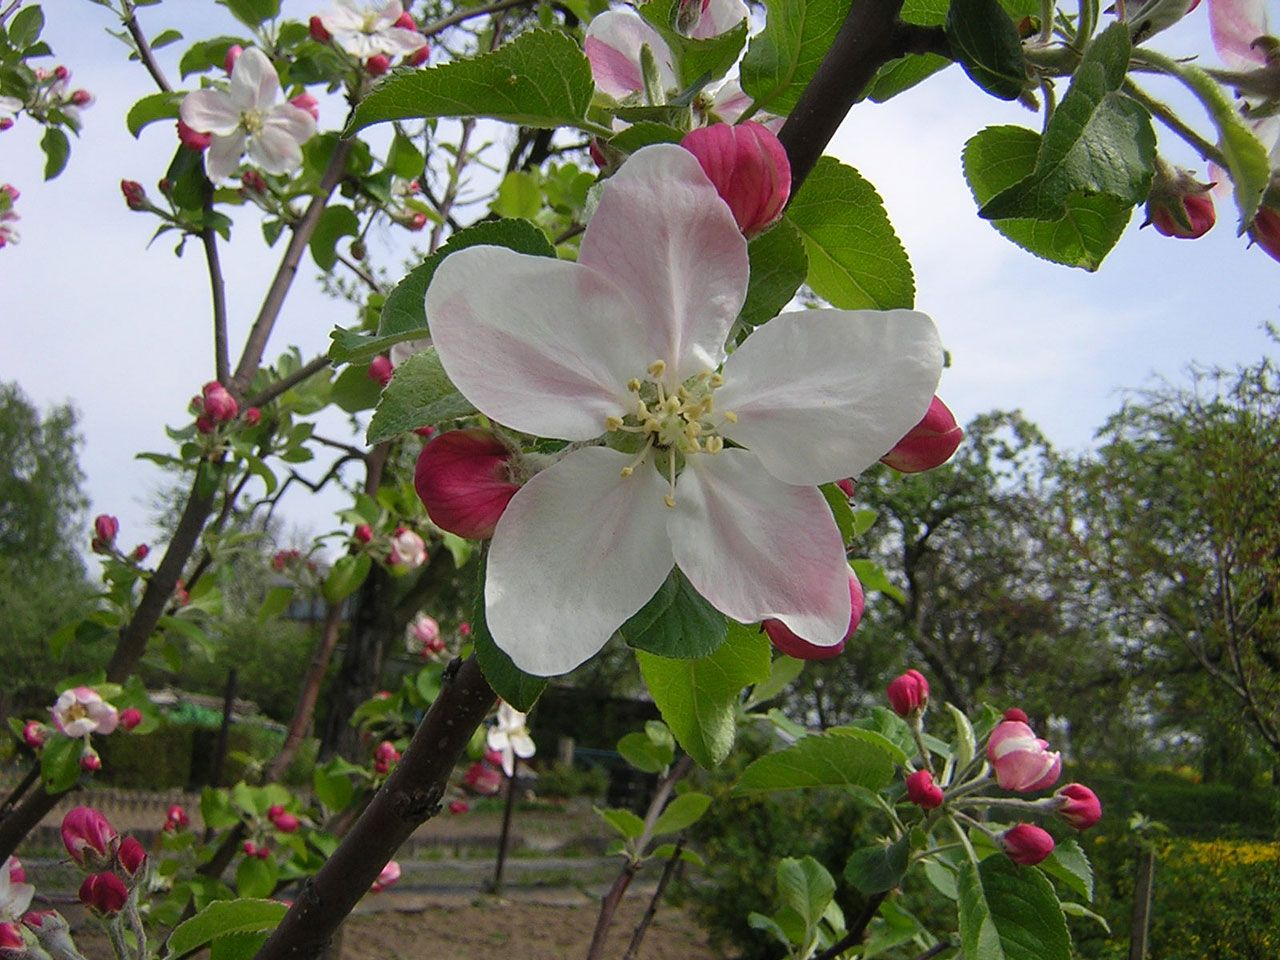 Public Domain Image Free Picture Of Apple Tree In